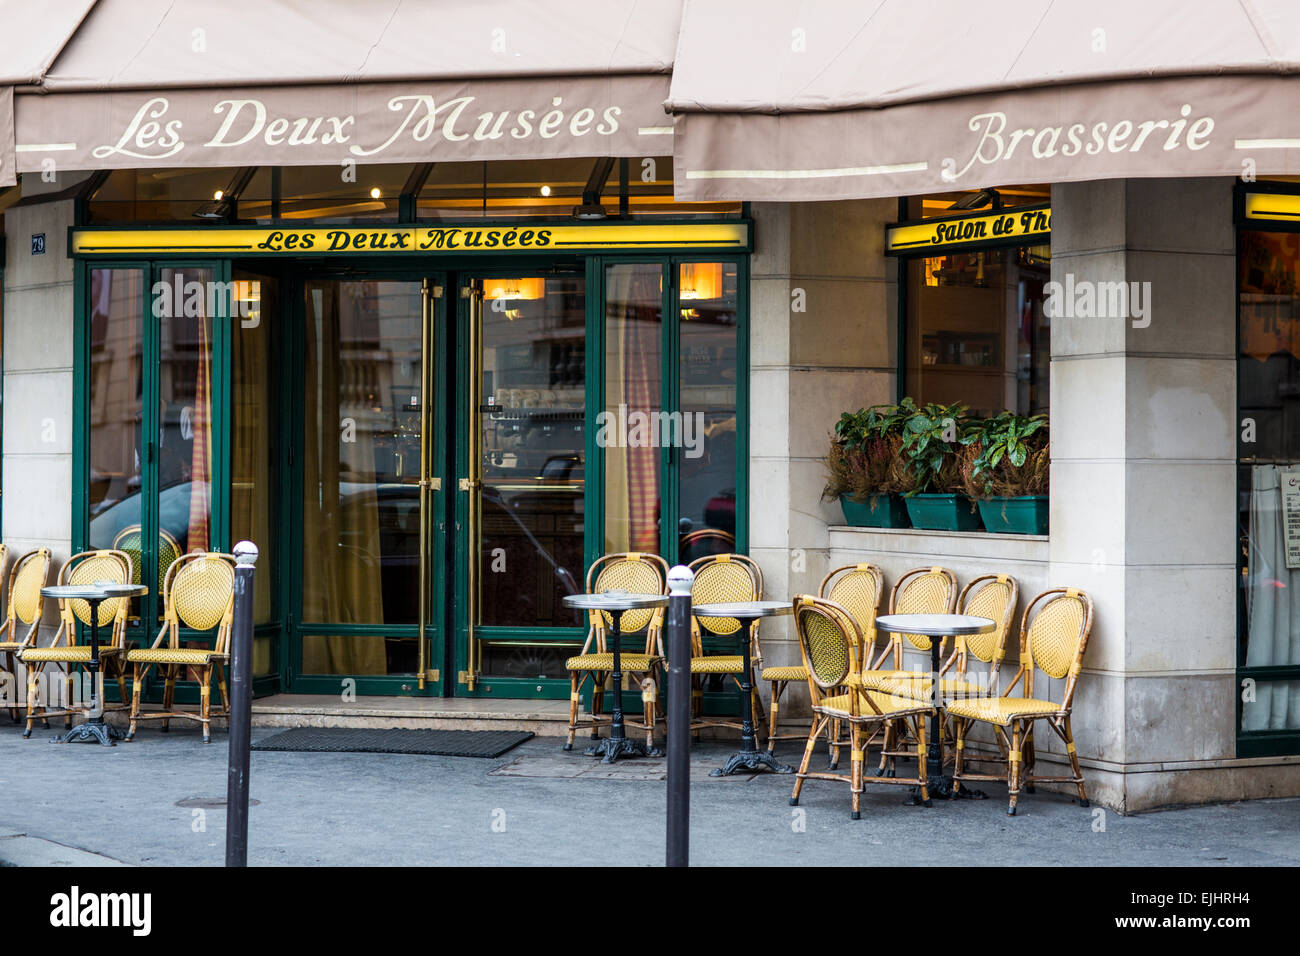 Les Deux Musees tea room and brasserie in Paris, France - Stock Image